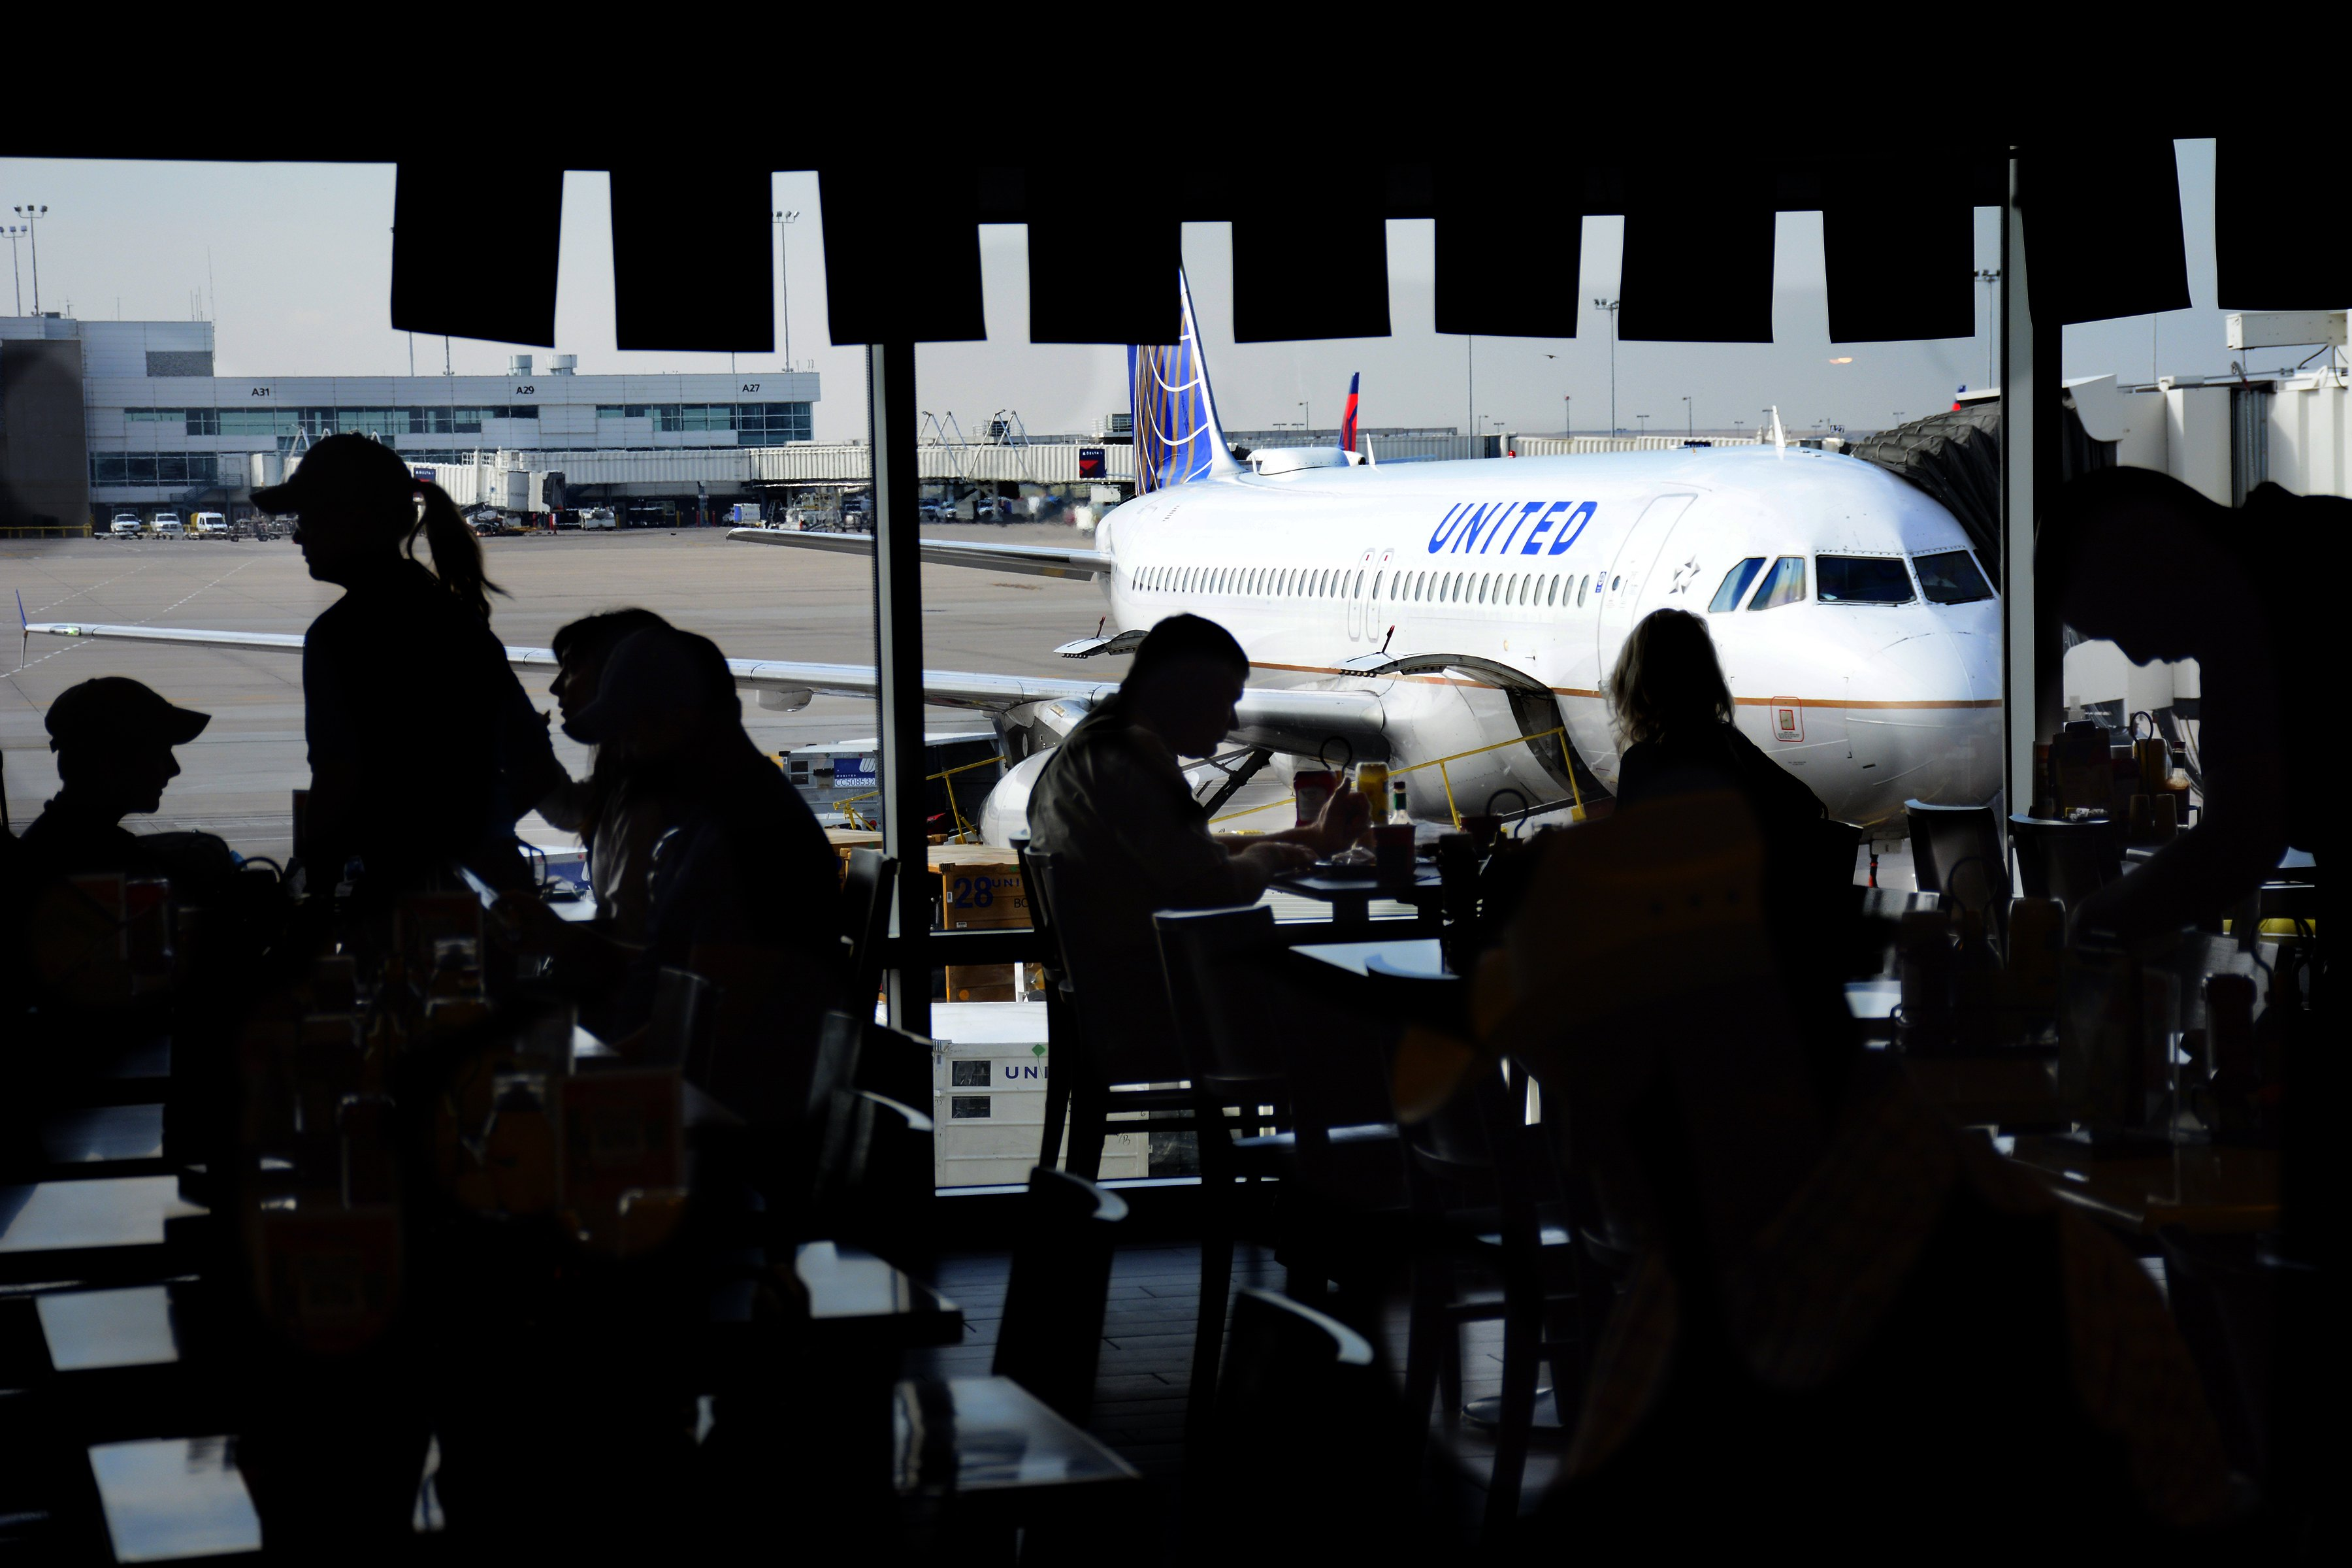 United Airlines has launched the longest flight from the U.S., from Los Angeles to Singapore.